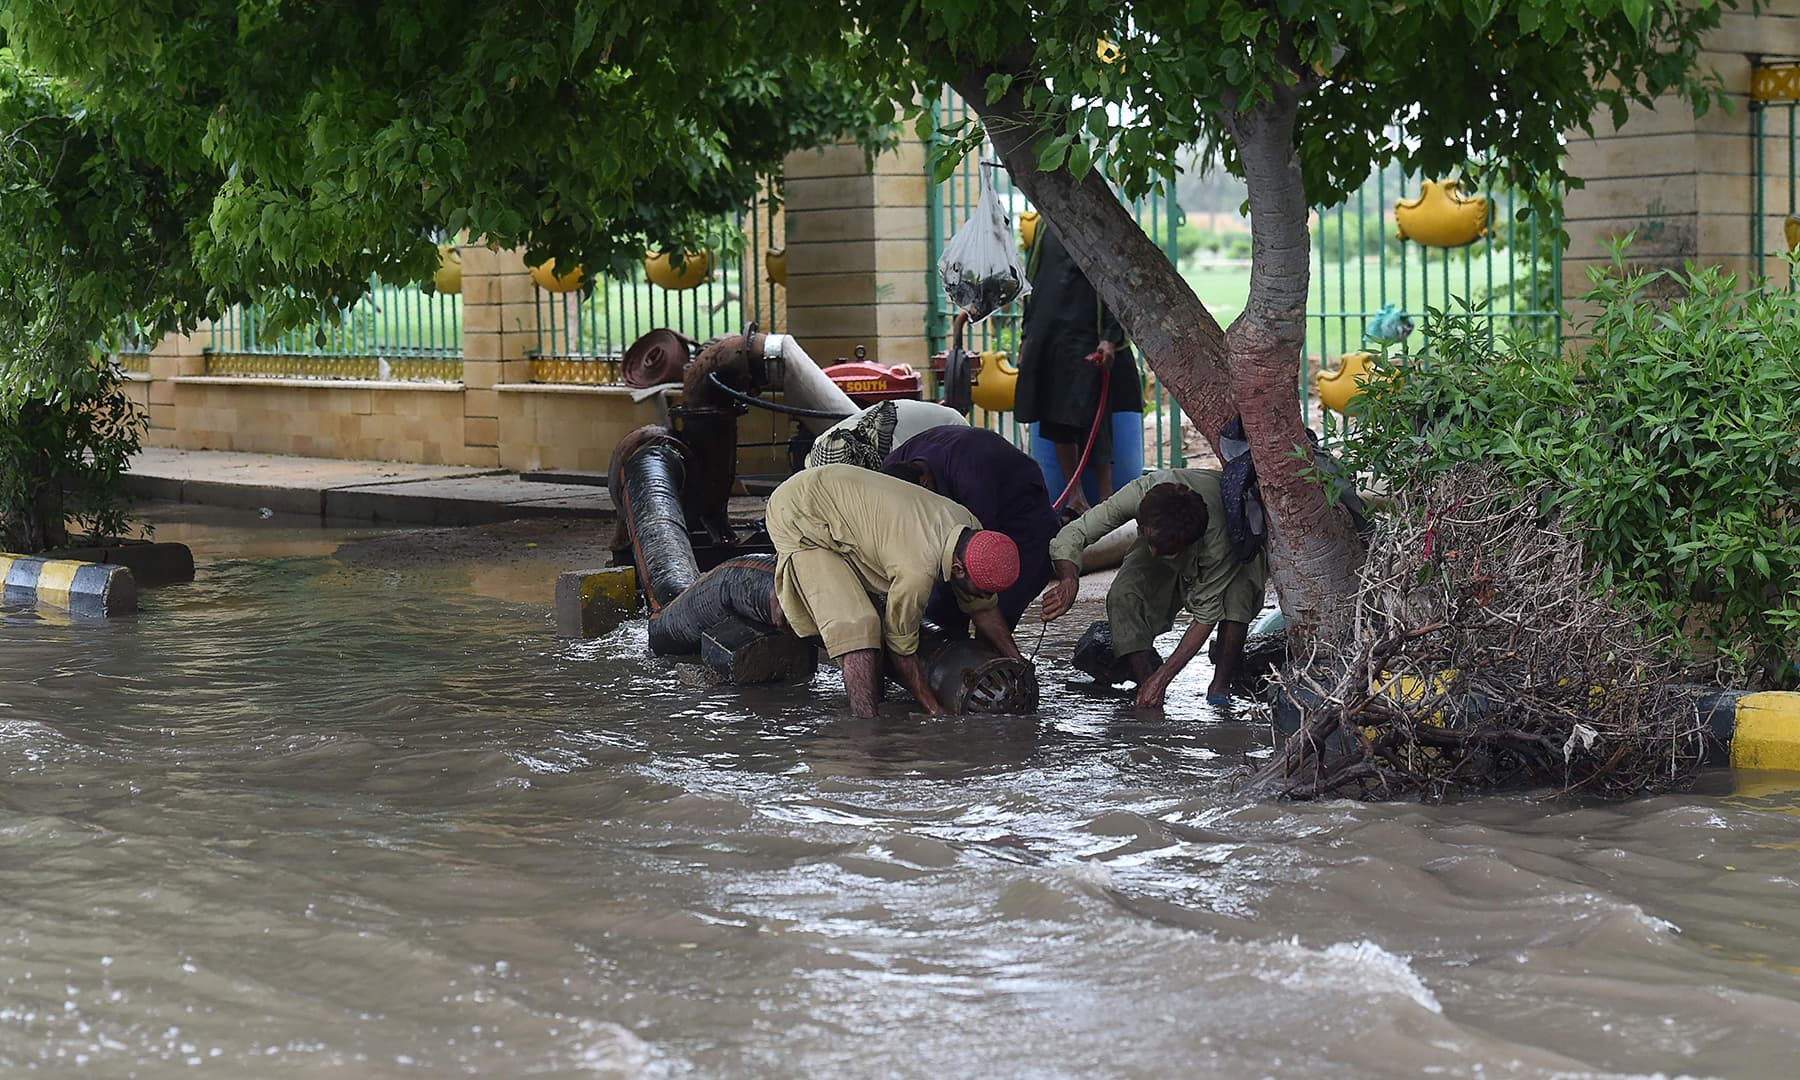 Workers use a pump to remove water from a flooded area following heavy monsoon rains in Karachi, on August 31. — AFP